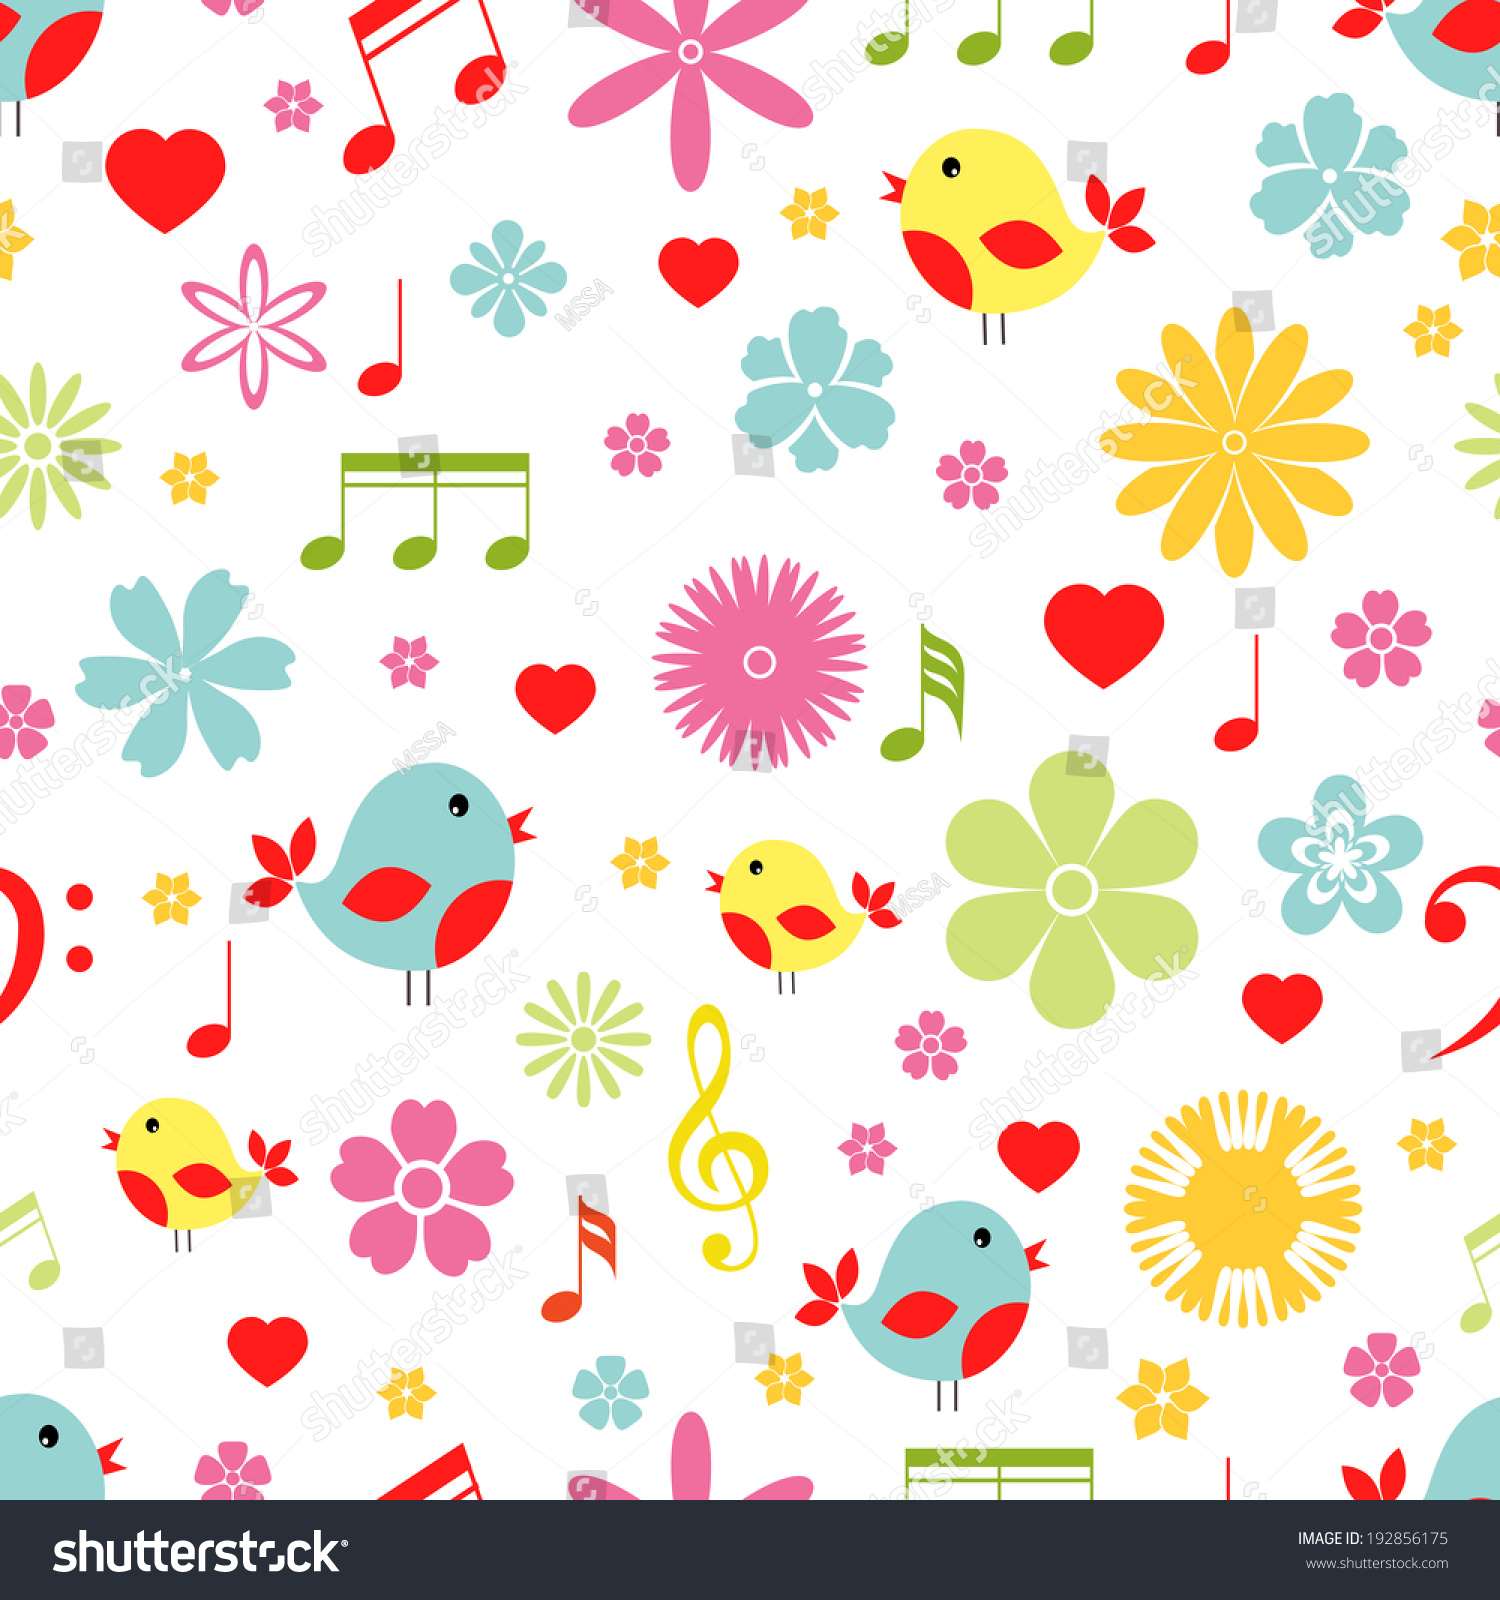 Amazing Wallpaper Music Spring - stock-photo-colorful-spring-flowers-birds-and-music-notes-seamless-background-pattern-in-square-format-192856175  Photograph_795245.jpg